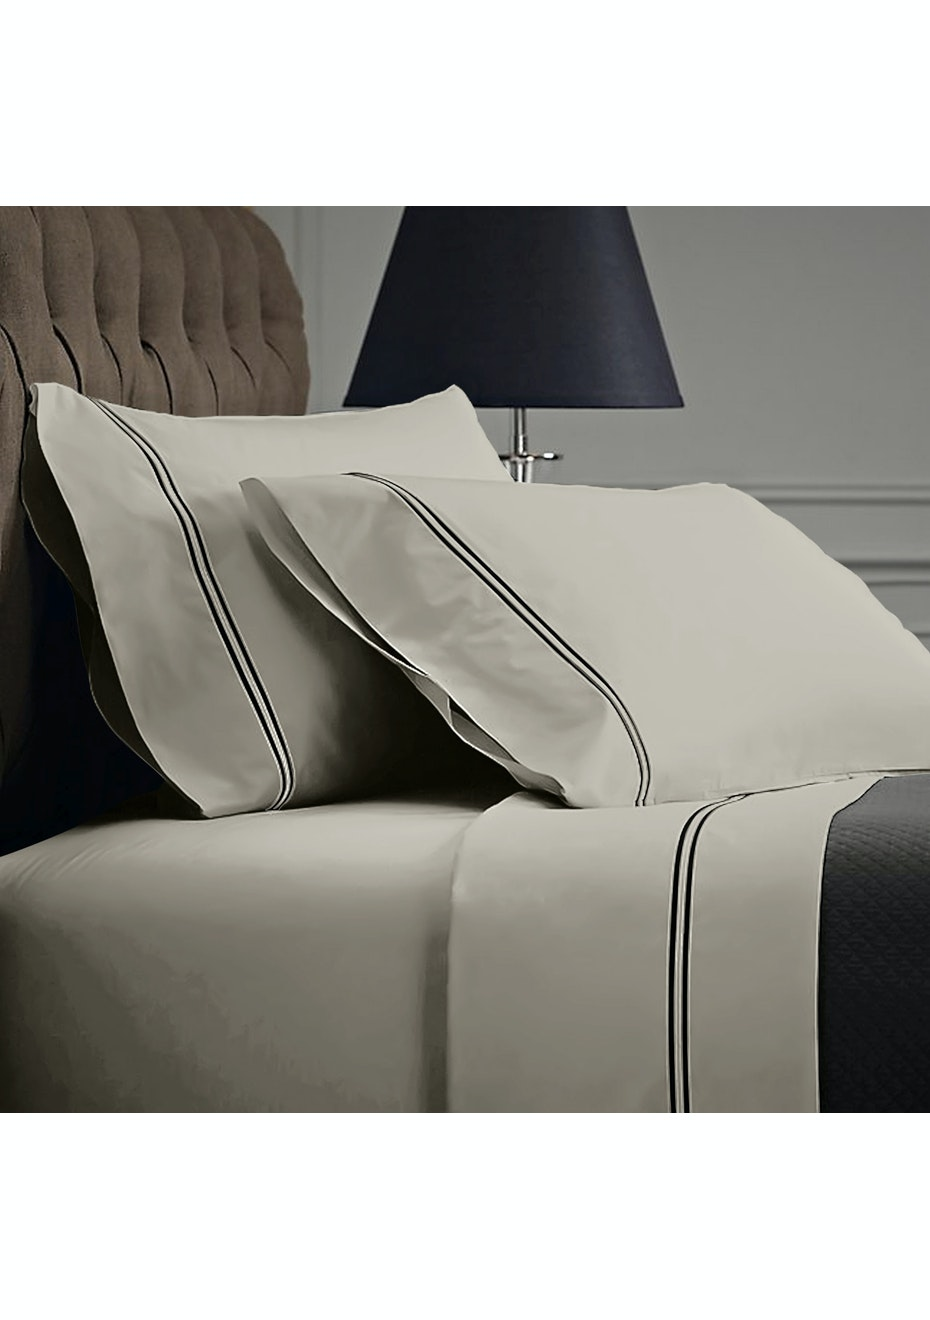 Style & Co 1000 Thread count Egyptian Cotton Hotel Collection Sorrento Sheet sets Double Silver